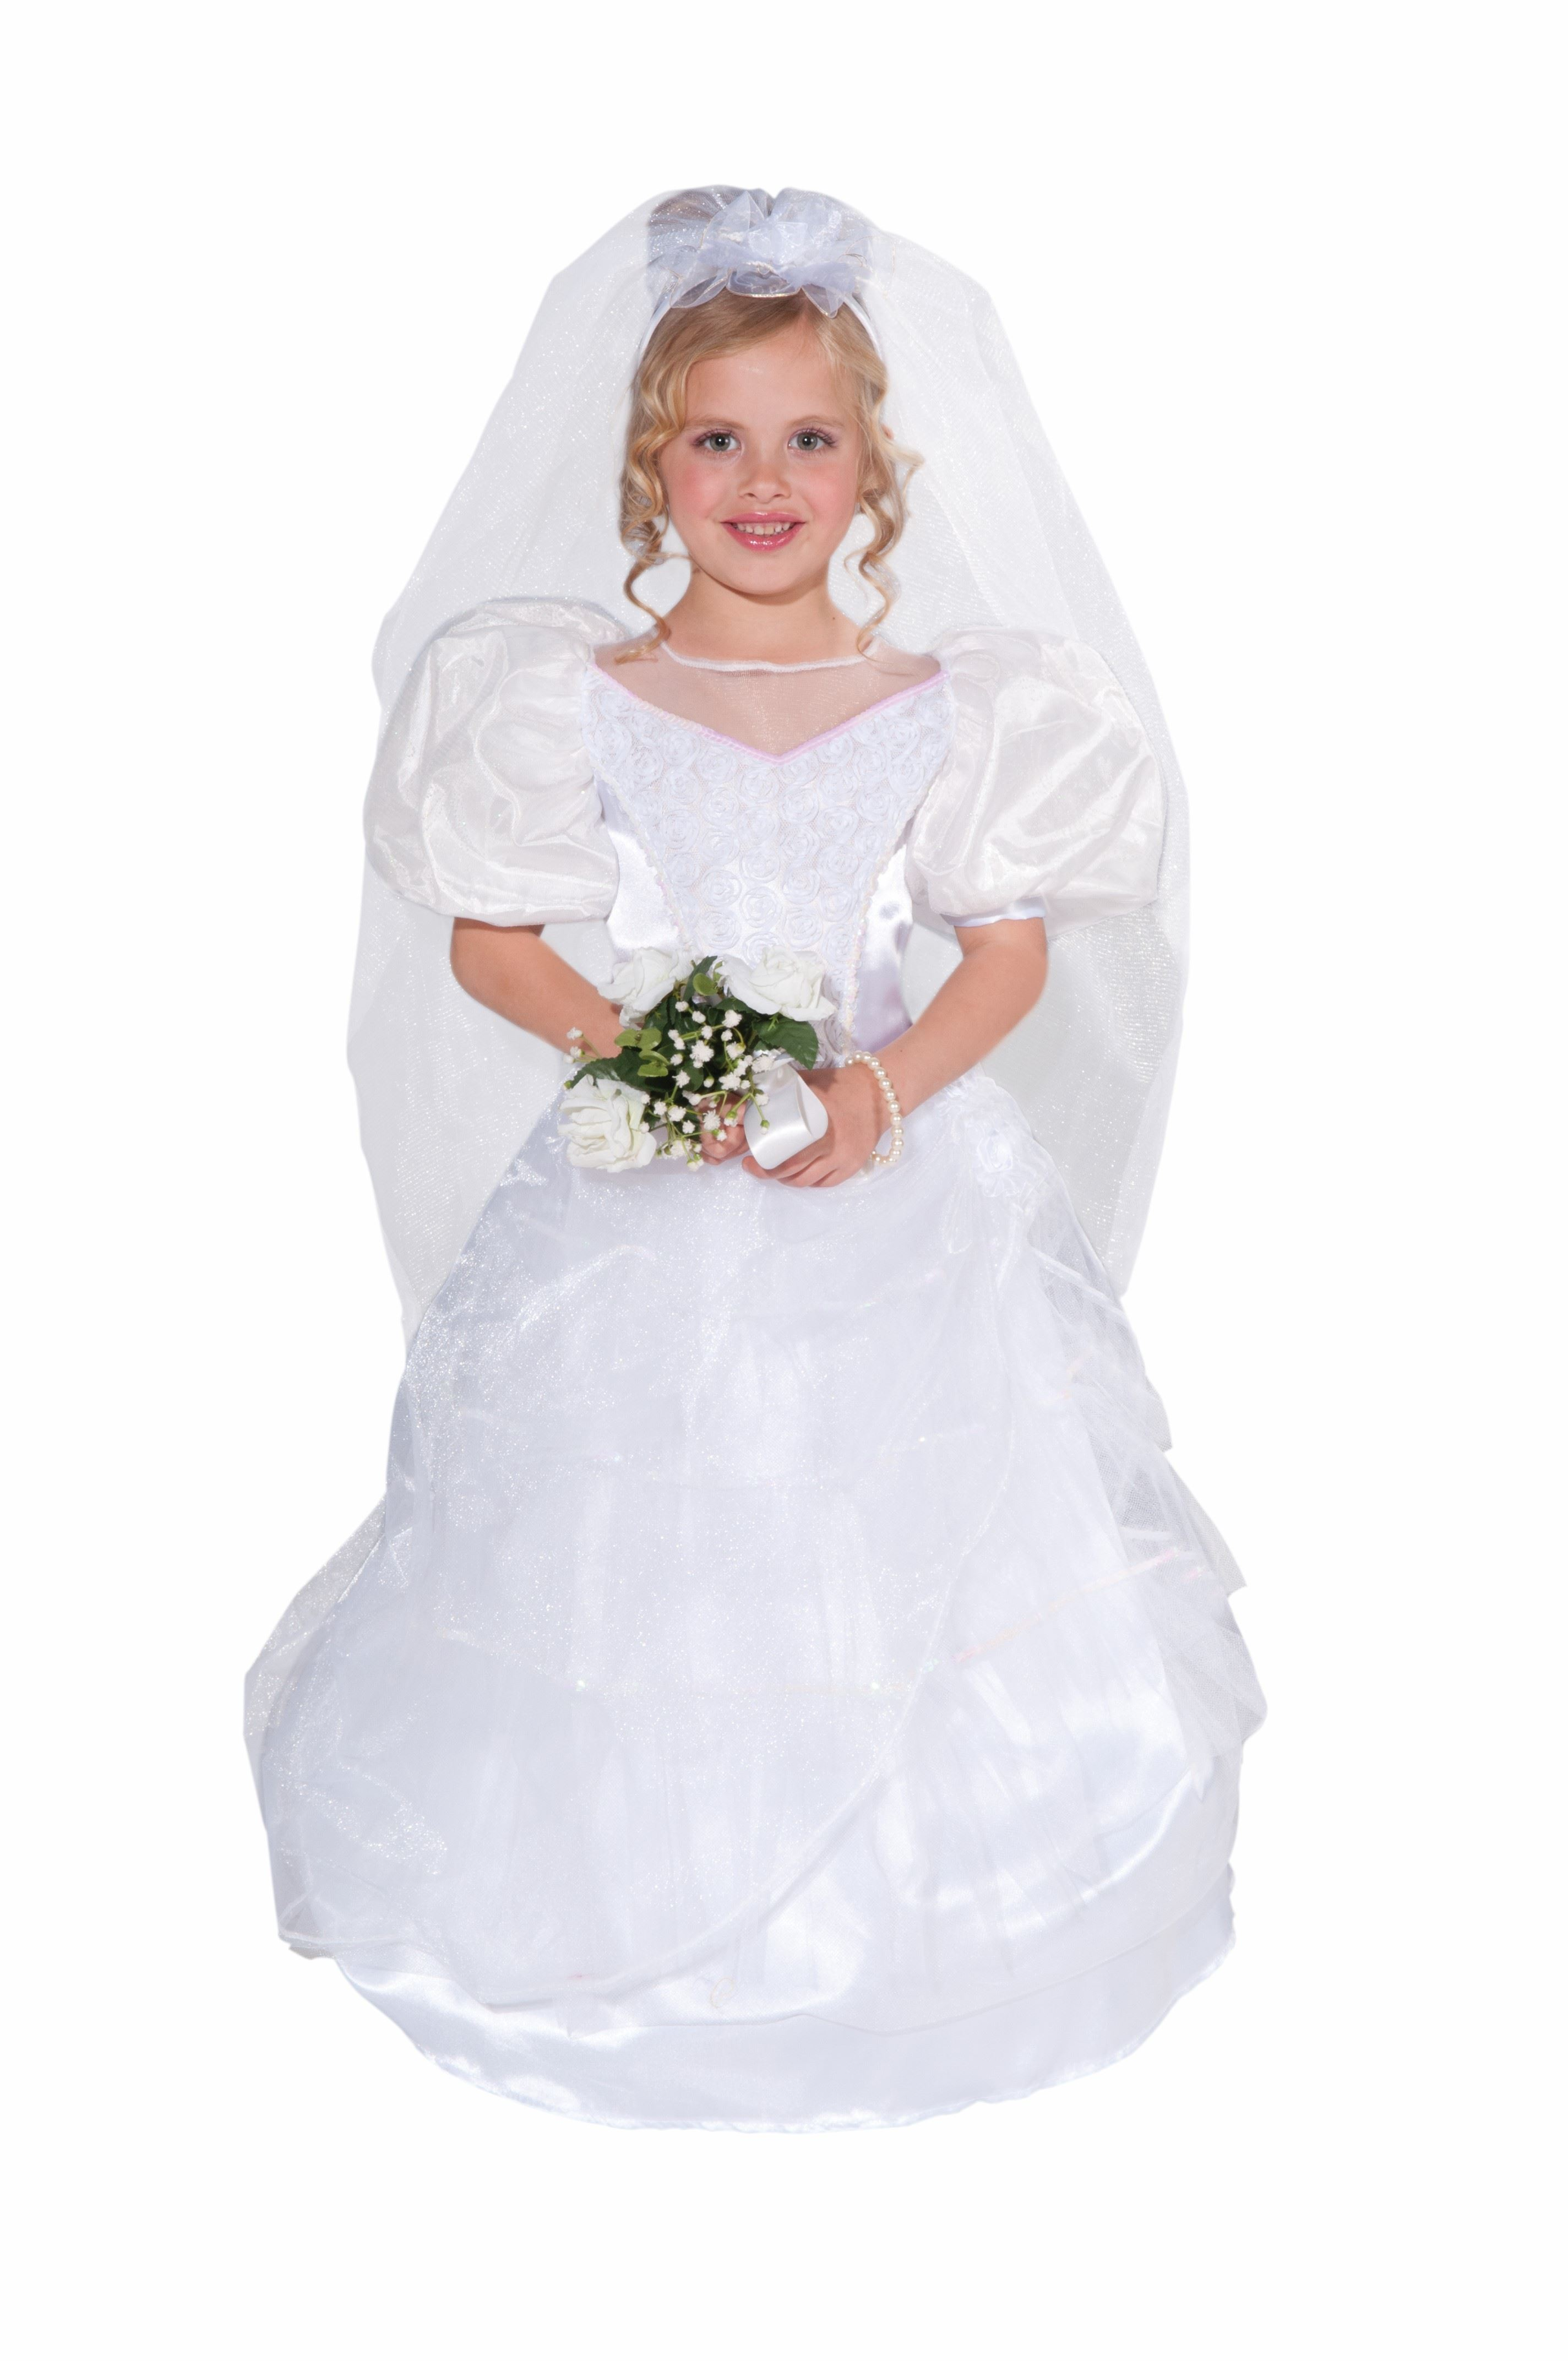 Kids Deluxe Girls Wedding Gown Costume